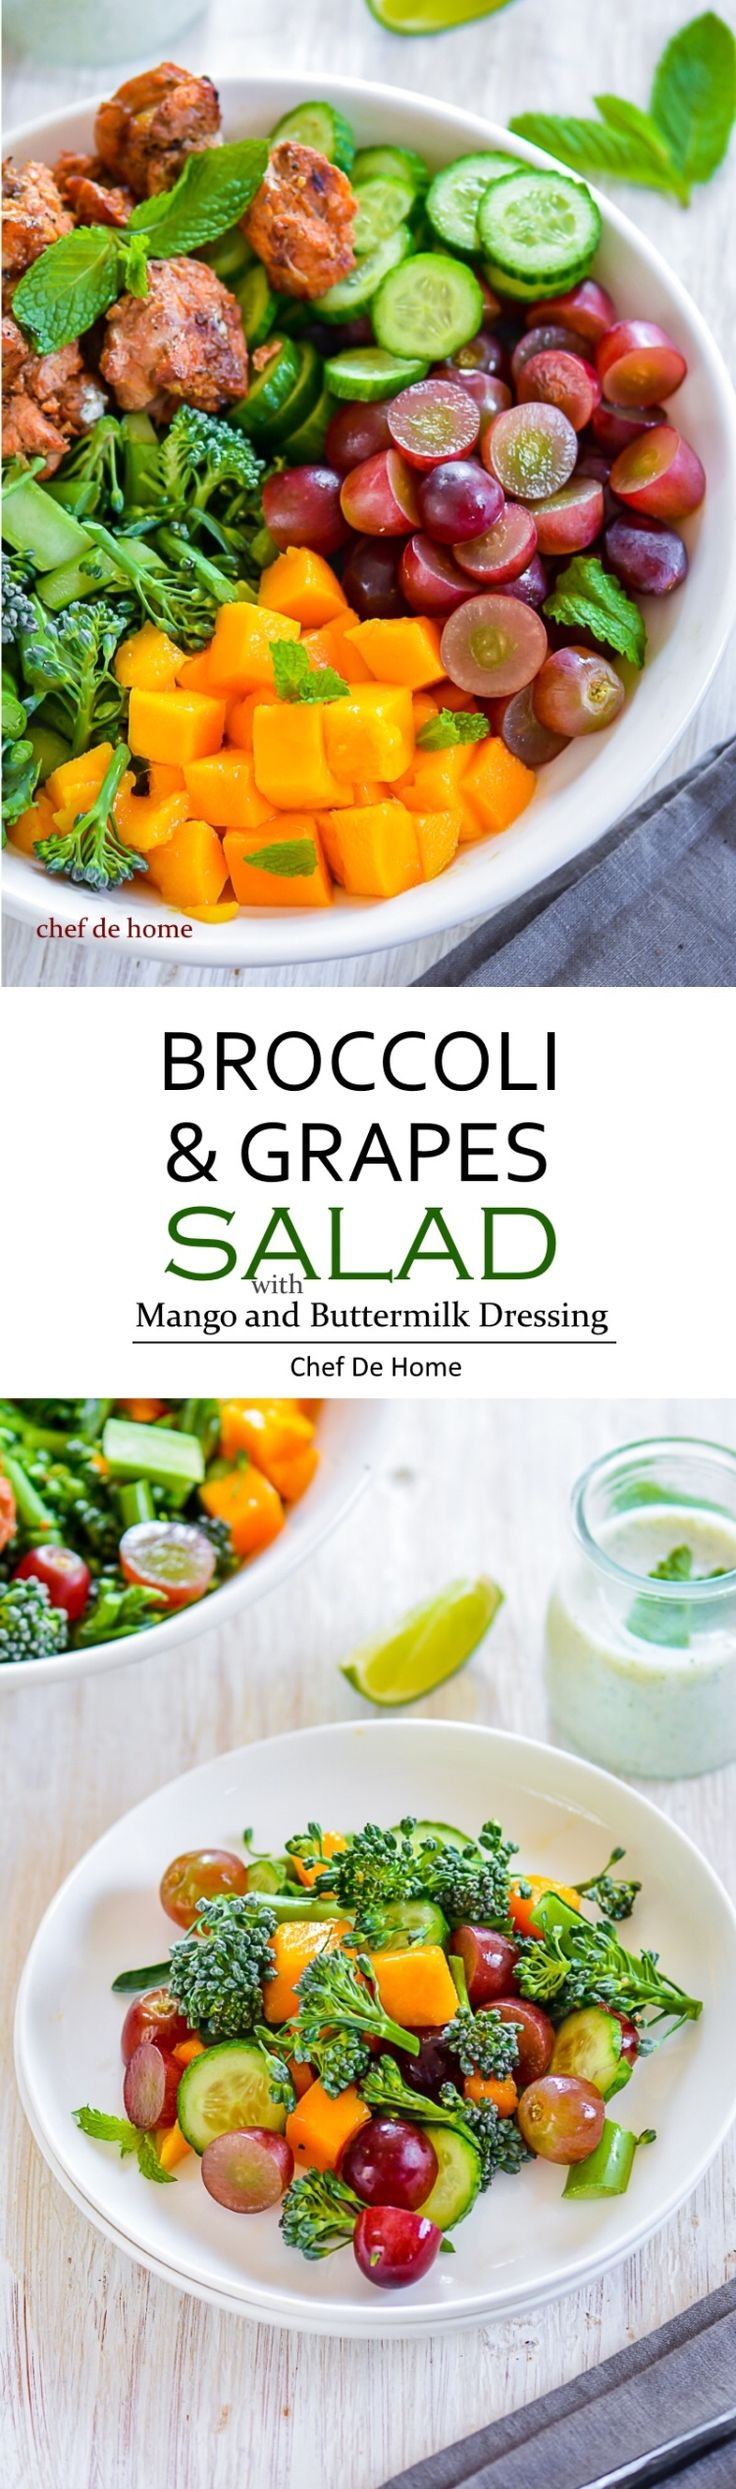 Broccoli Grape Salad with Mango and Buttermilk Dressing - A healthy broccoli salad with sweet seedless grapes, and juicy fresh mango, coated in a lite and healthy buttermilk mint-lime dressing. Every fork of this salad will have something delicious to keep digging for more! Sweetness of mango, grapes and crunch of broccoli! Yum!